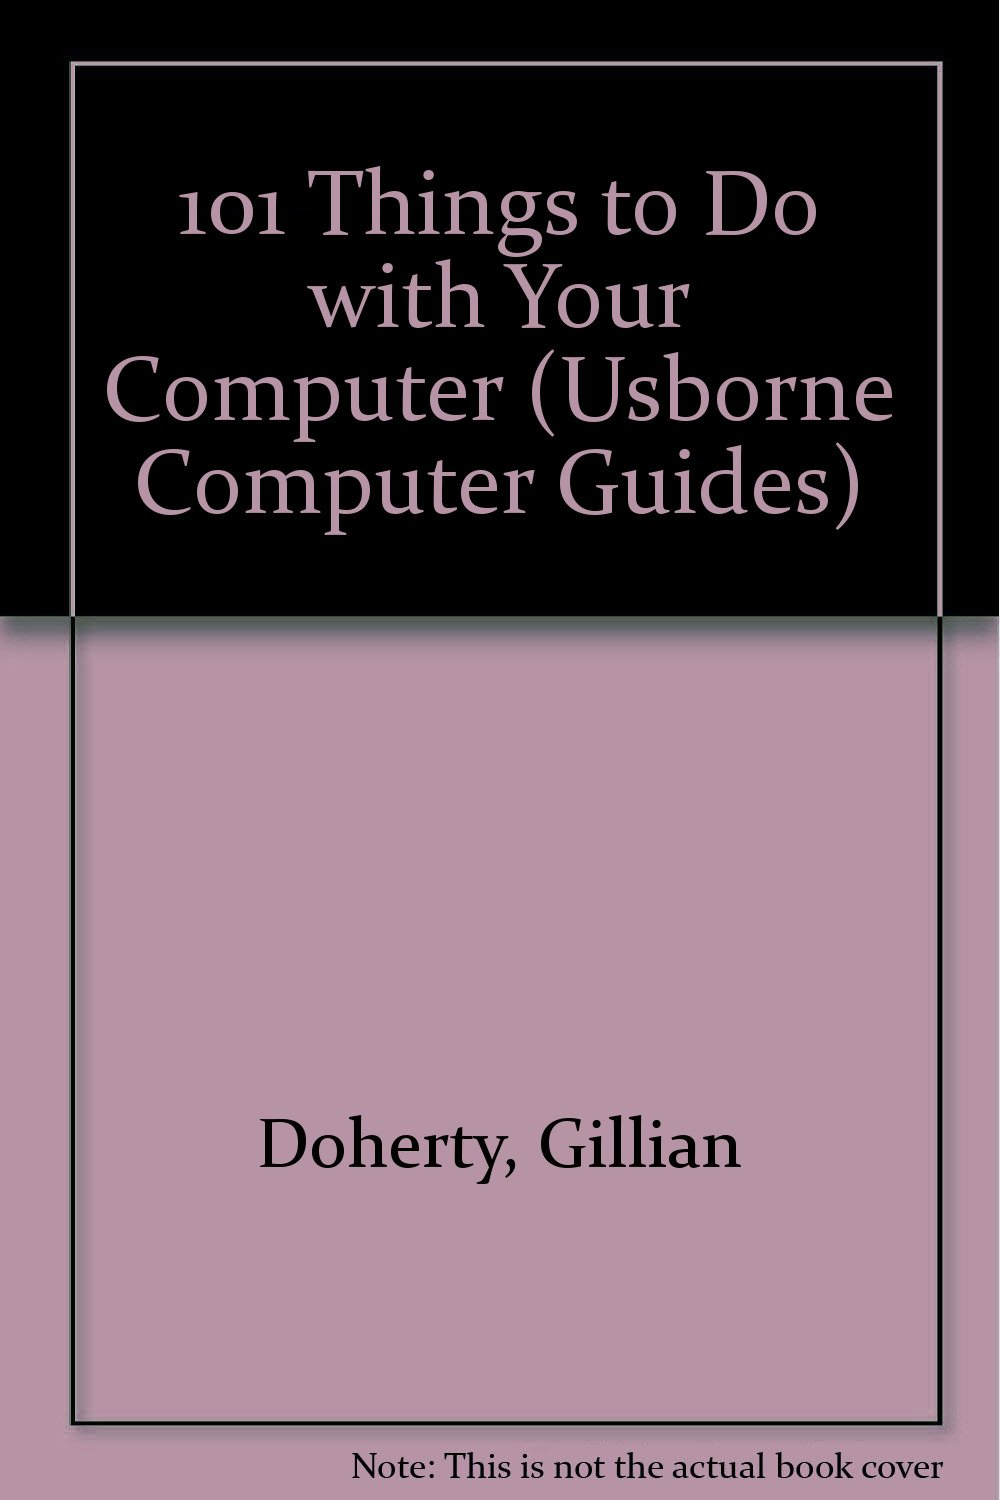 Amazon.in: Buy 101 Things to Do With Your Computer (Usborne Computer Guides)  Book Online at Low Prices in India | 101 Things to Do With Your Computer ...